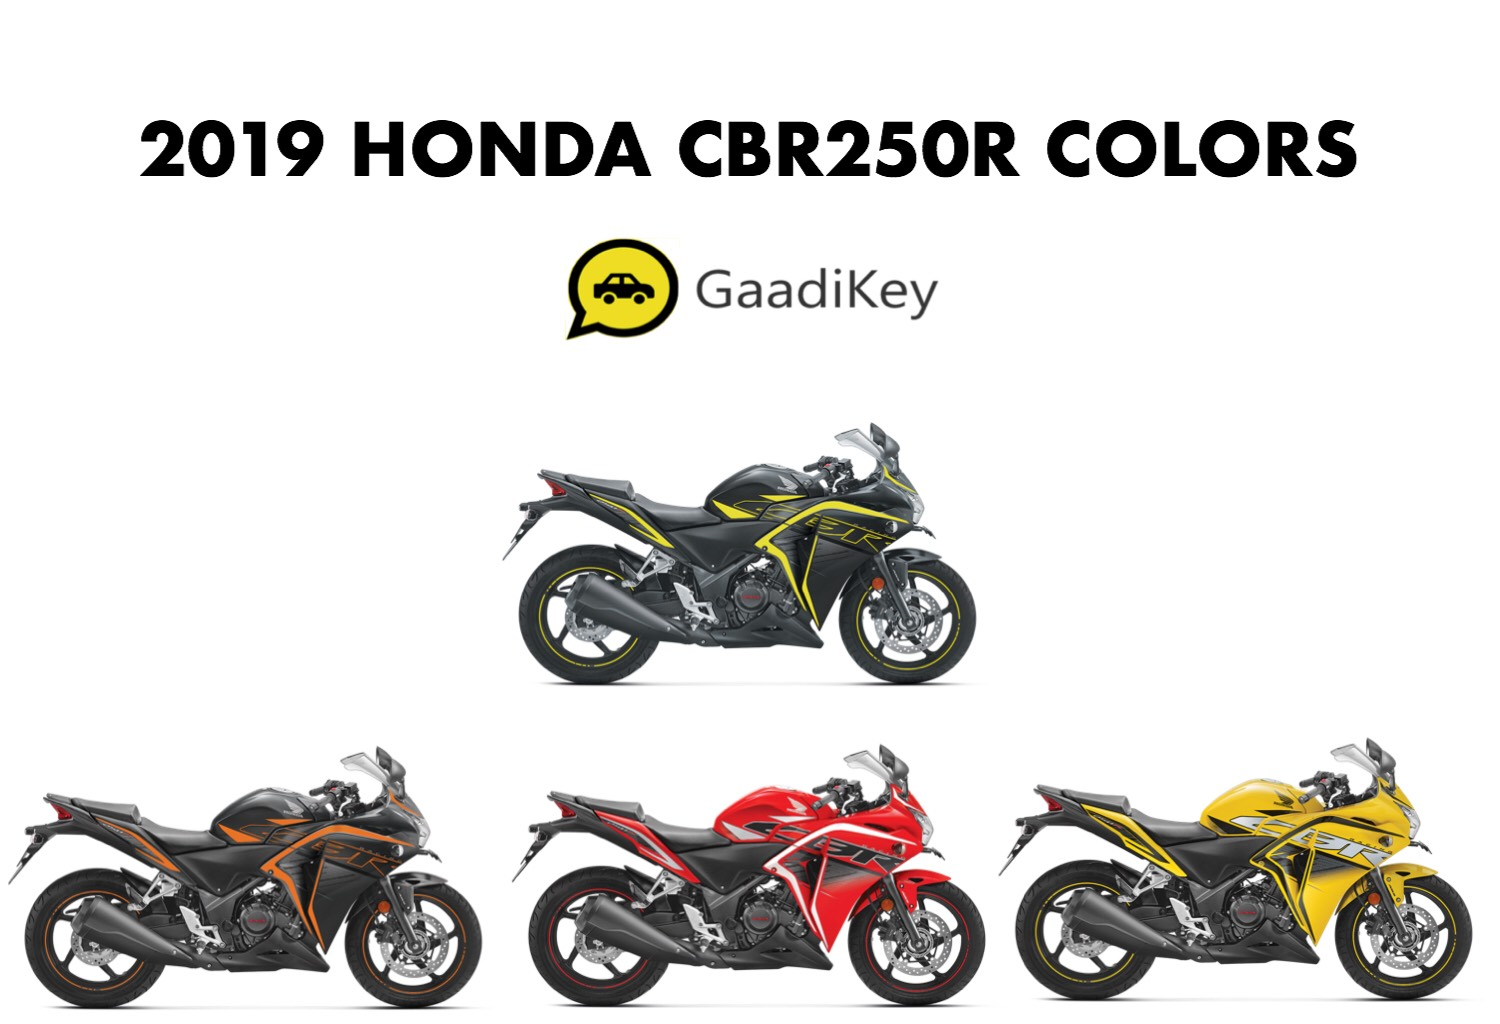 2019 Honda Cbr250r Colors Yellow Red Orange Green Gaadikey